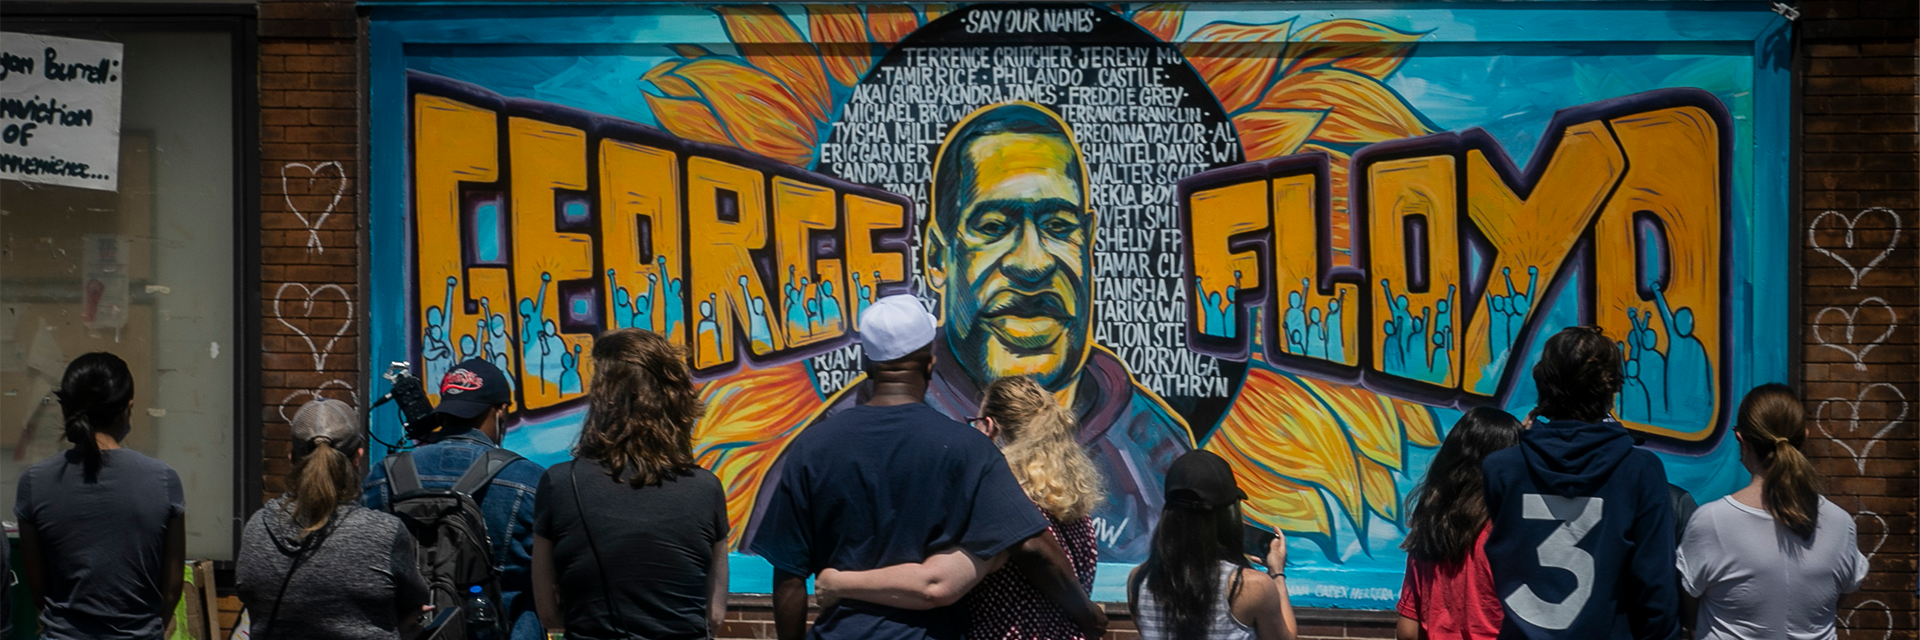 Visitors at memorial featuring a mural of George Floyd in Minneapolis, MN